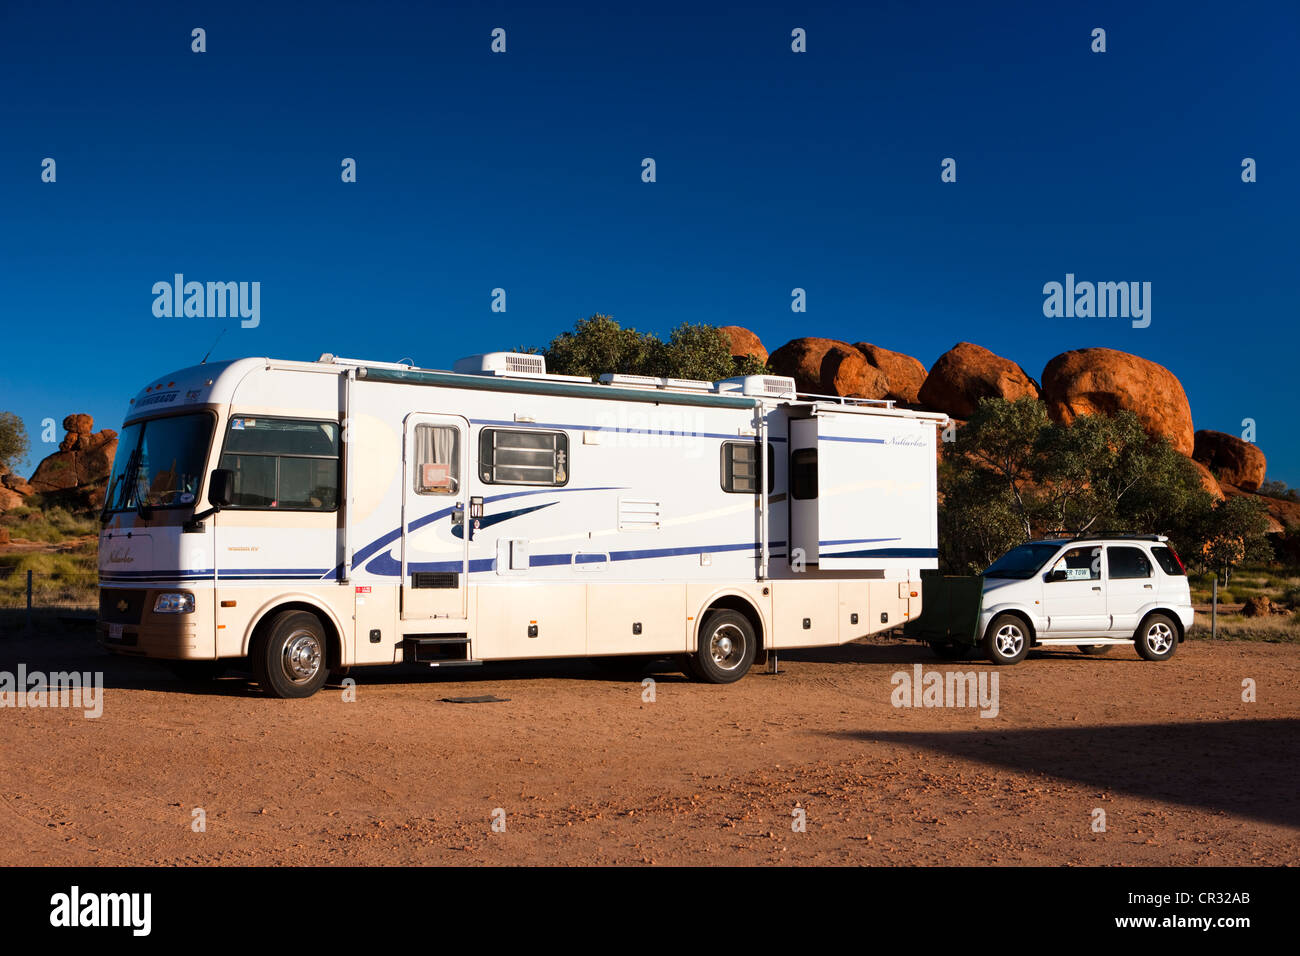 Campervan with a car attached to the back, parked on a campsite, Devils Marbles, Northern Territory, Australia - Stock Image